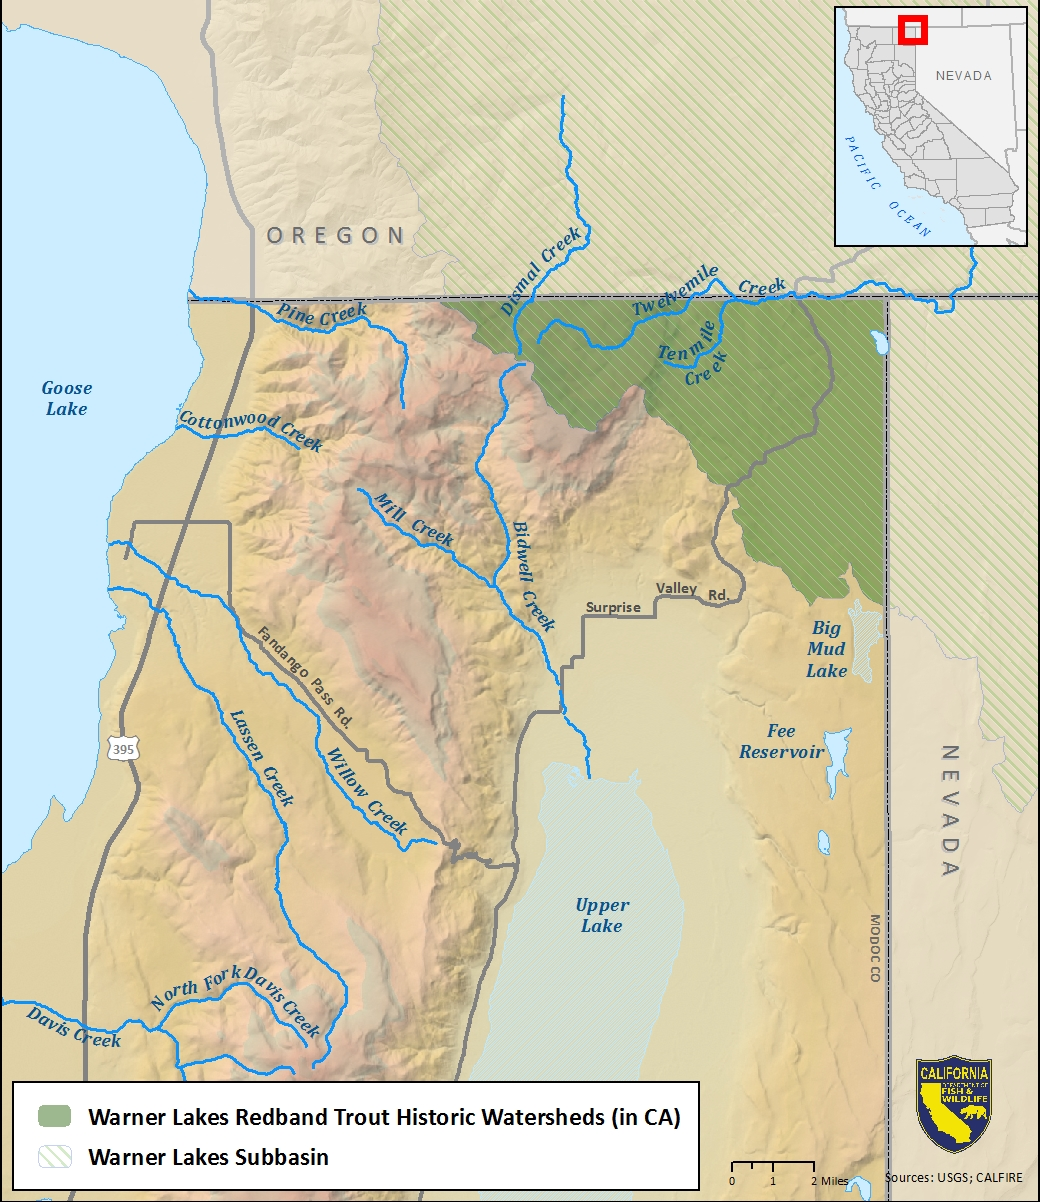 Map of Warner Lakes redband trout historic watershed-link opens in new window